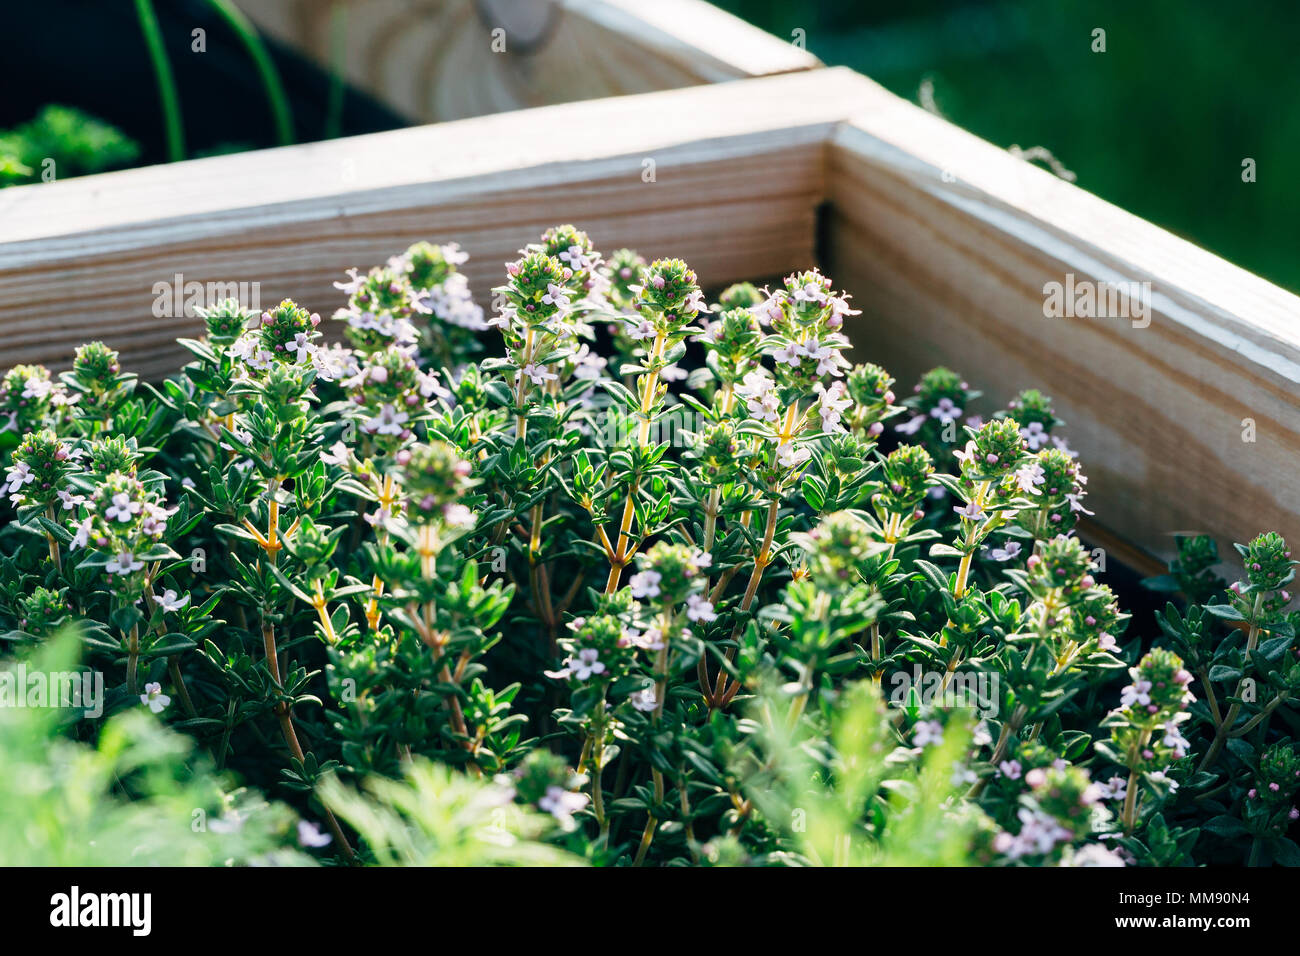 Closeup of blooming thyme herbs - Stock Image